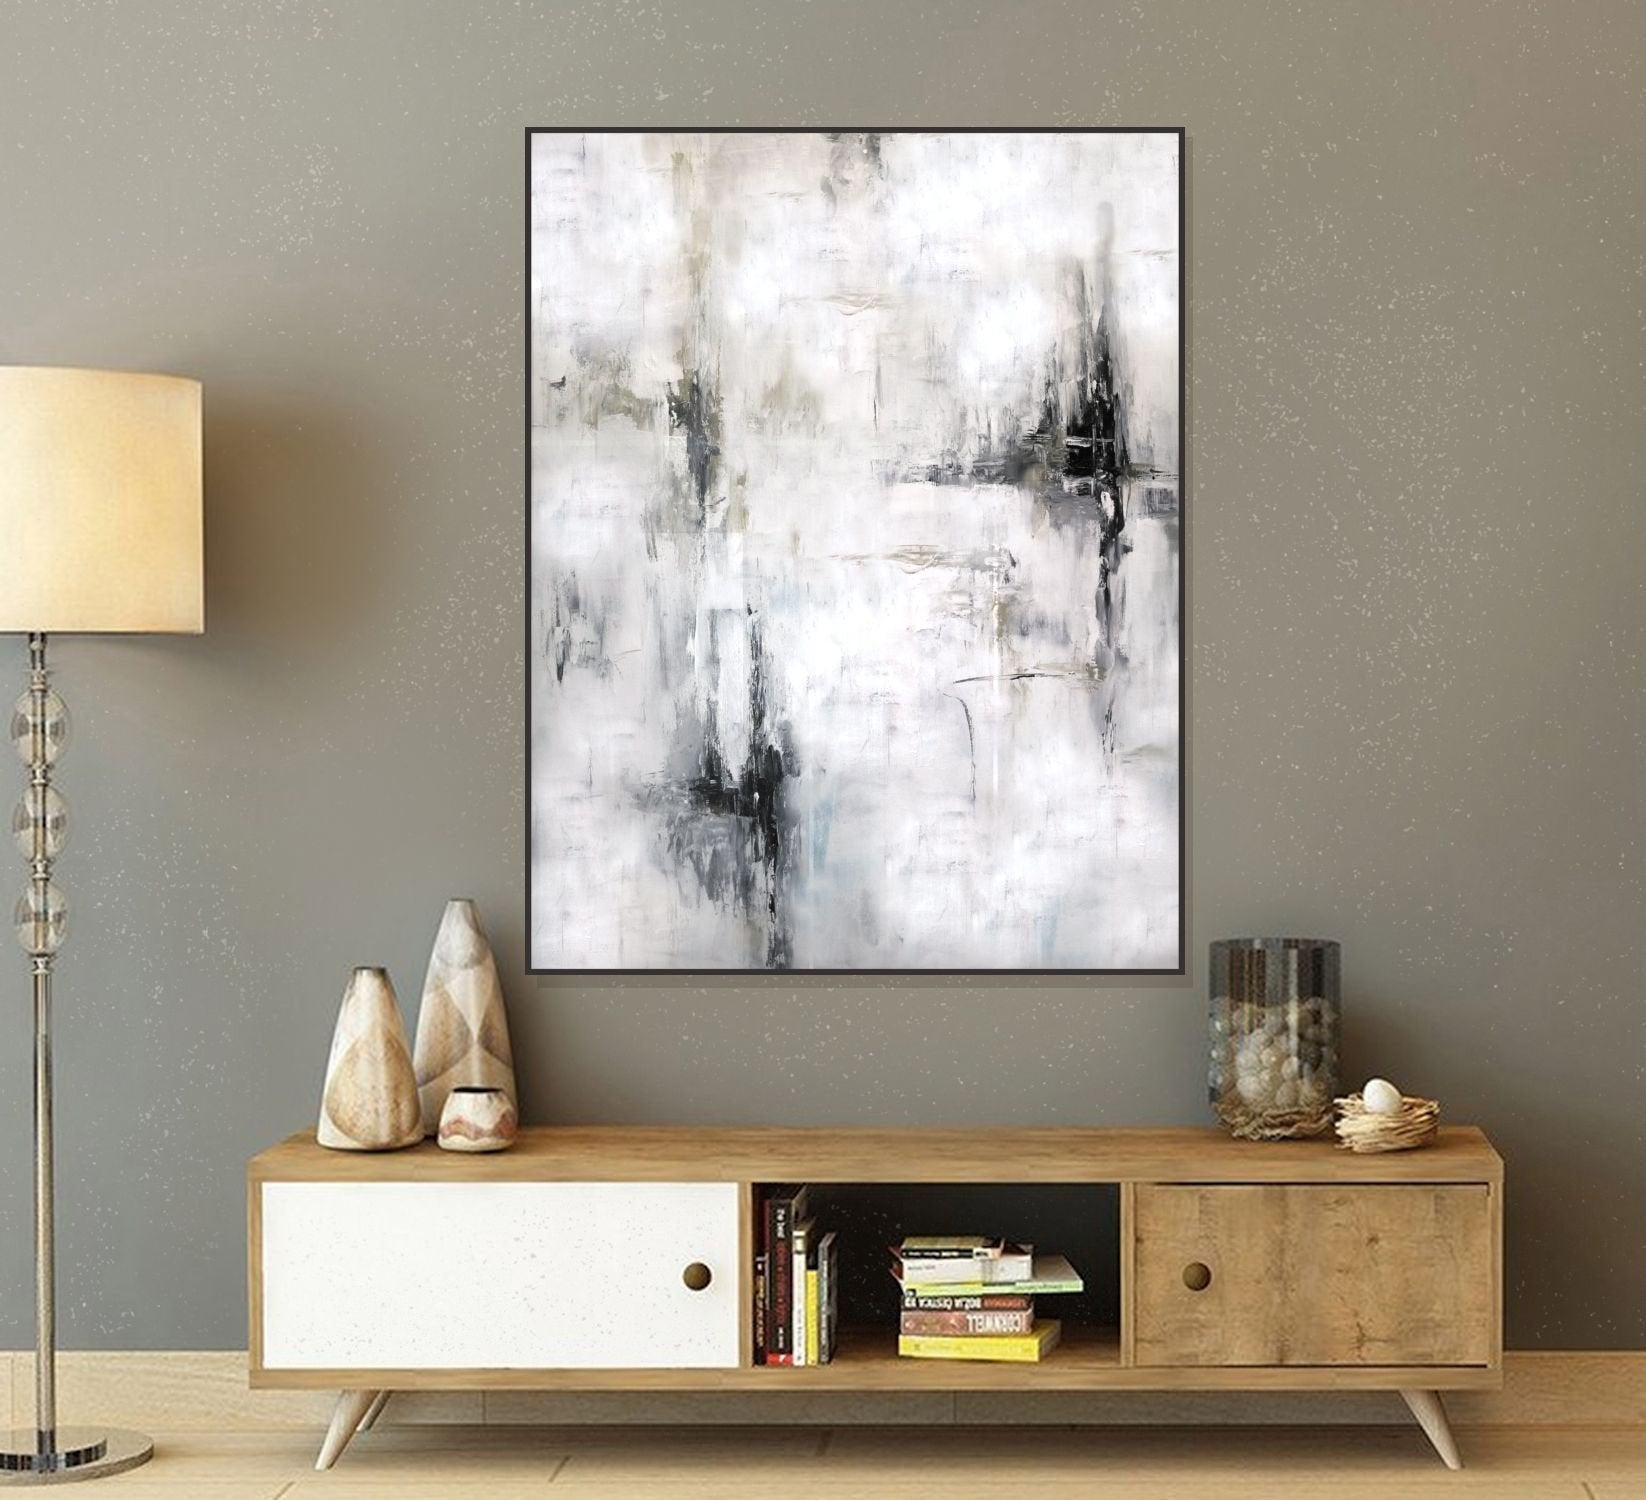 Extra Large Wall Art   Original Abstract Painting   White Artwork  Minimalist Landscape   Modern Industrial Wall Decor  White Abstract Art Intended For Large Modern Industrial Wall Decor (Photo 3 of 30)